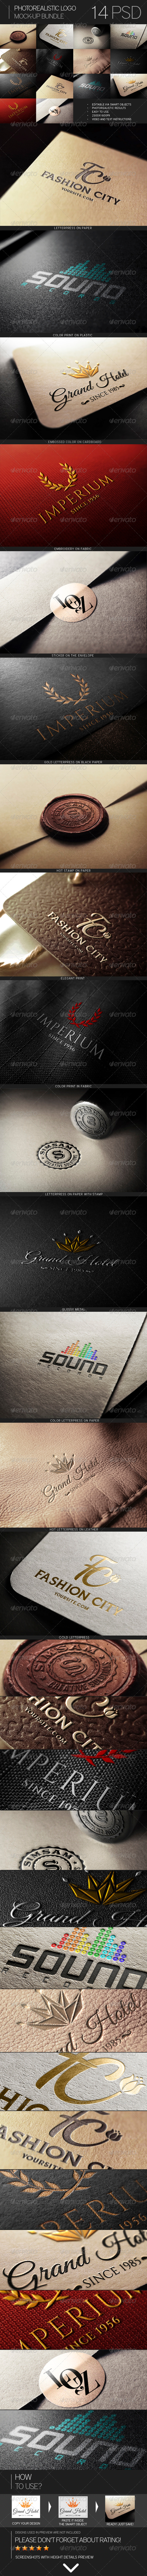 Photorealistic Logo Mock-Up Bundle - Logo Product Mock-Ups